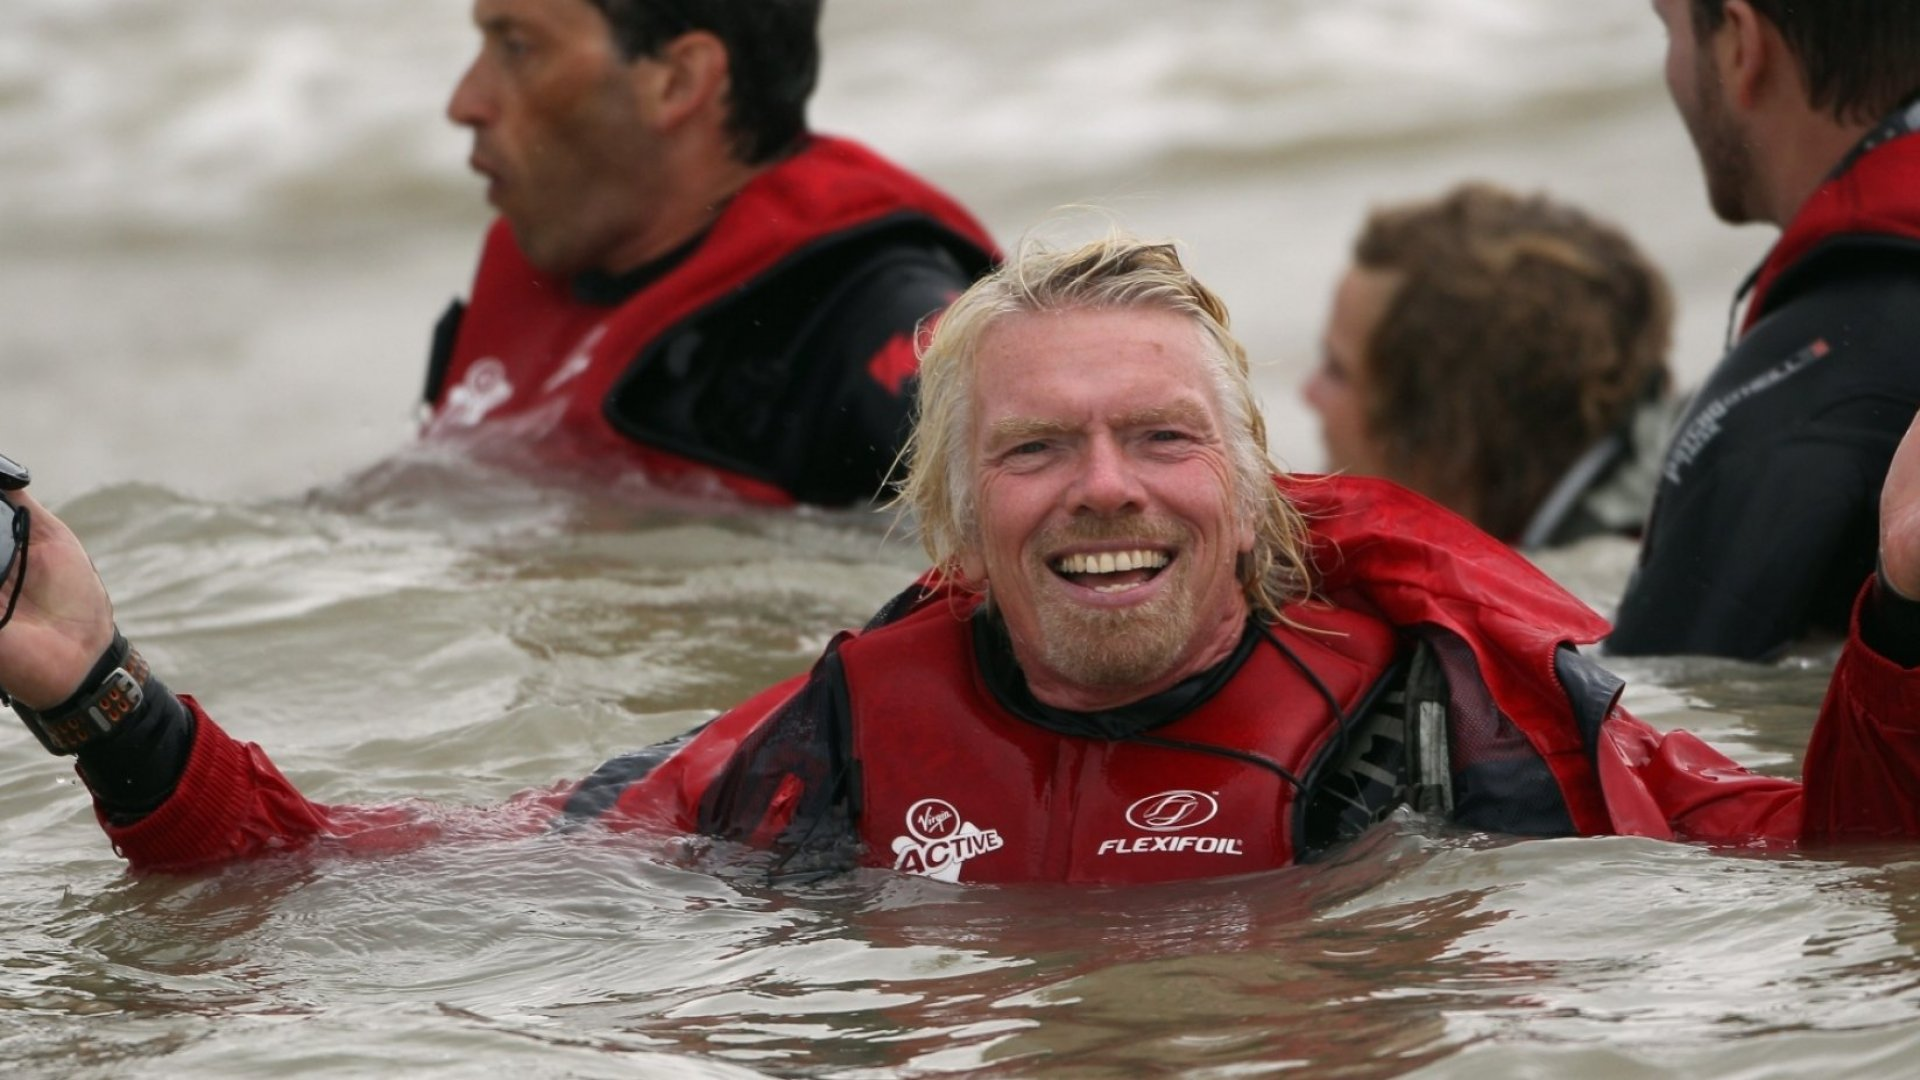 Richard Branson floats in the sea after failing in his attempt to Kite Surf across the English Channel on August 25, 2010 in Dungeness, England. Due to weather conditions, Branson had to call off the attempt, which was to celebrate his 60th birthday, and have him become the oldest person to Kite-surf across the English Channel.